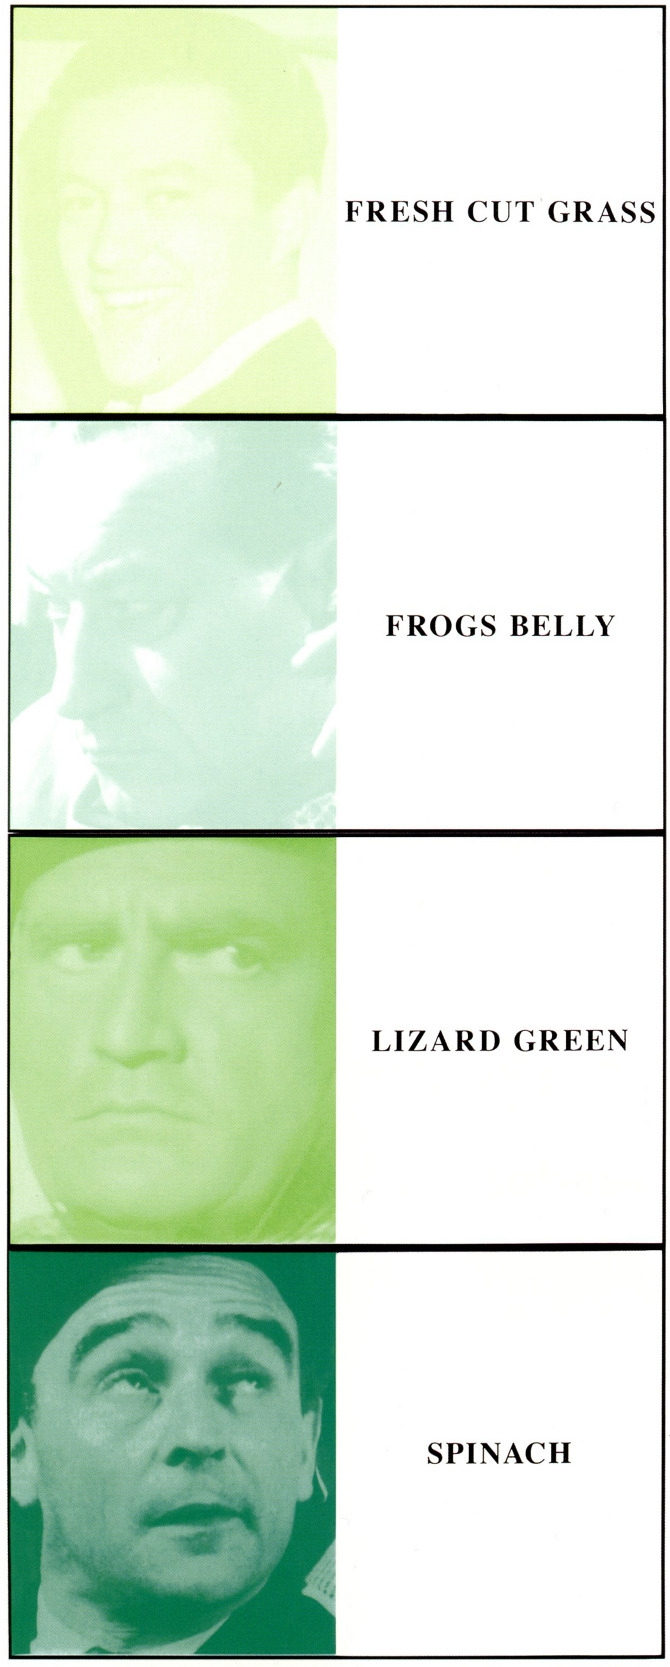 John Baldessari,  Prima Facie (Fifth State) Fresh Cut Grass/Frogs Belley/Lizard Green/Spinach (in 4 parts),  2005